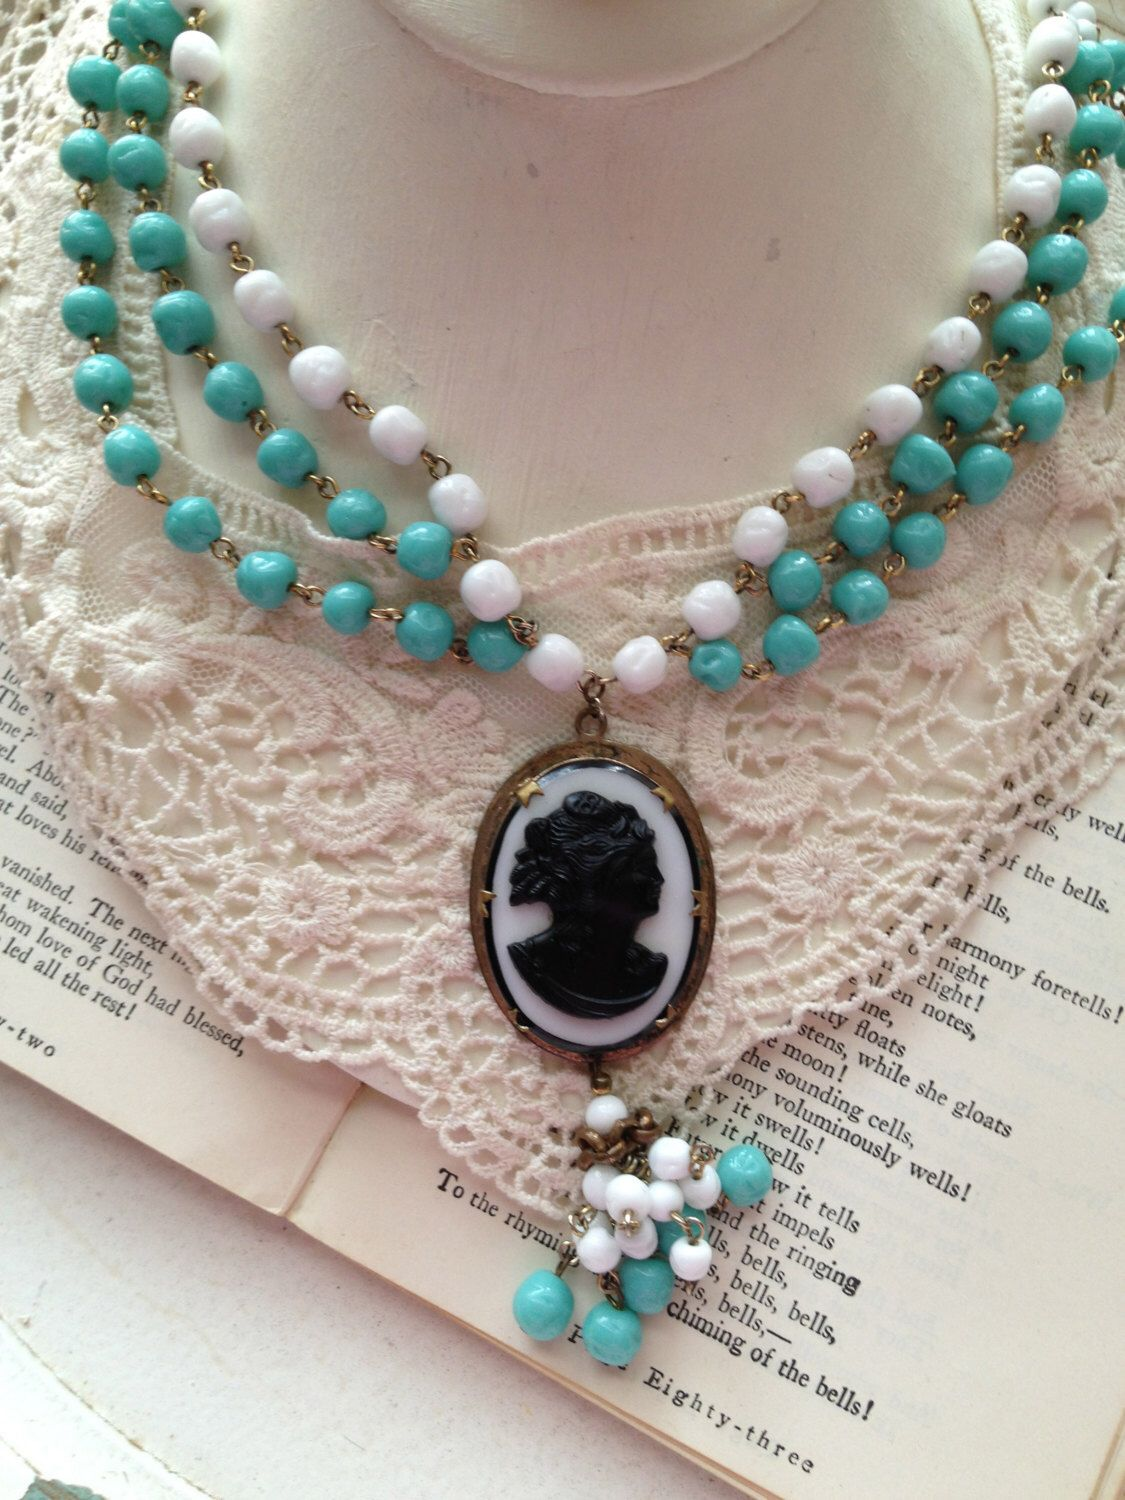 Mystique ... Vintage Assemblage Cameo White and Turquoise Milk Glass Tassle Necklace by VintageJewelryJunque on Etsy https://www.etsy.com/listing/173984943/mystique-vintage-assemblage-cameo-white